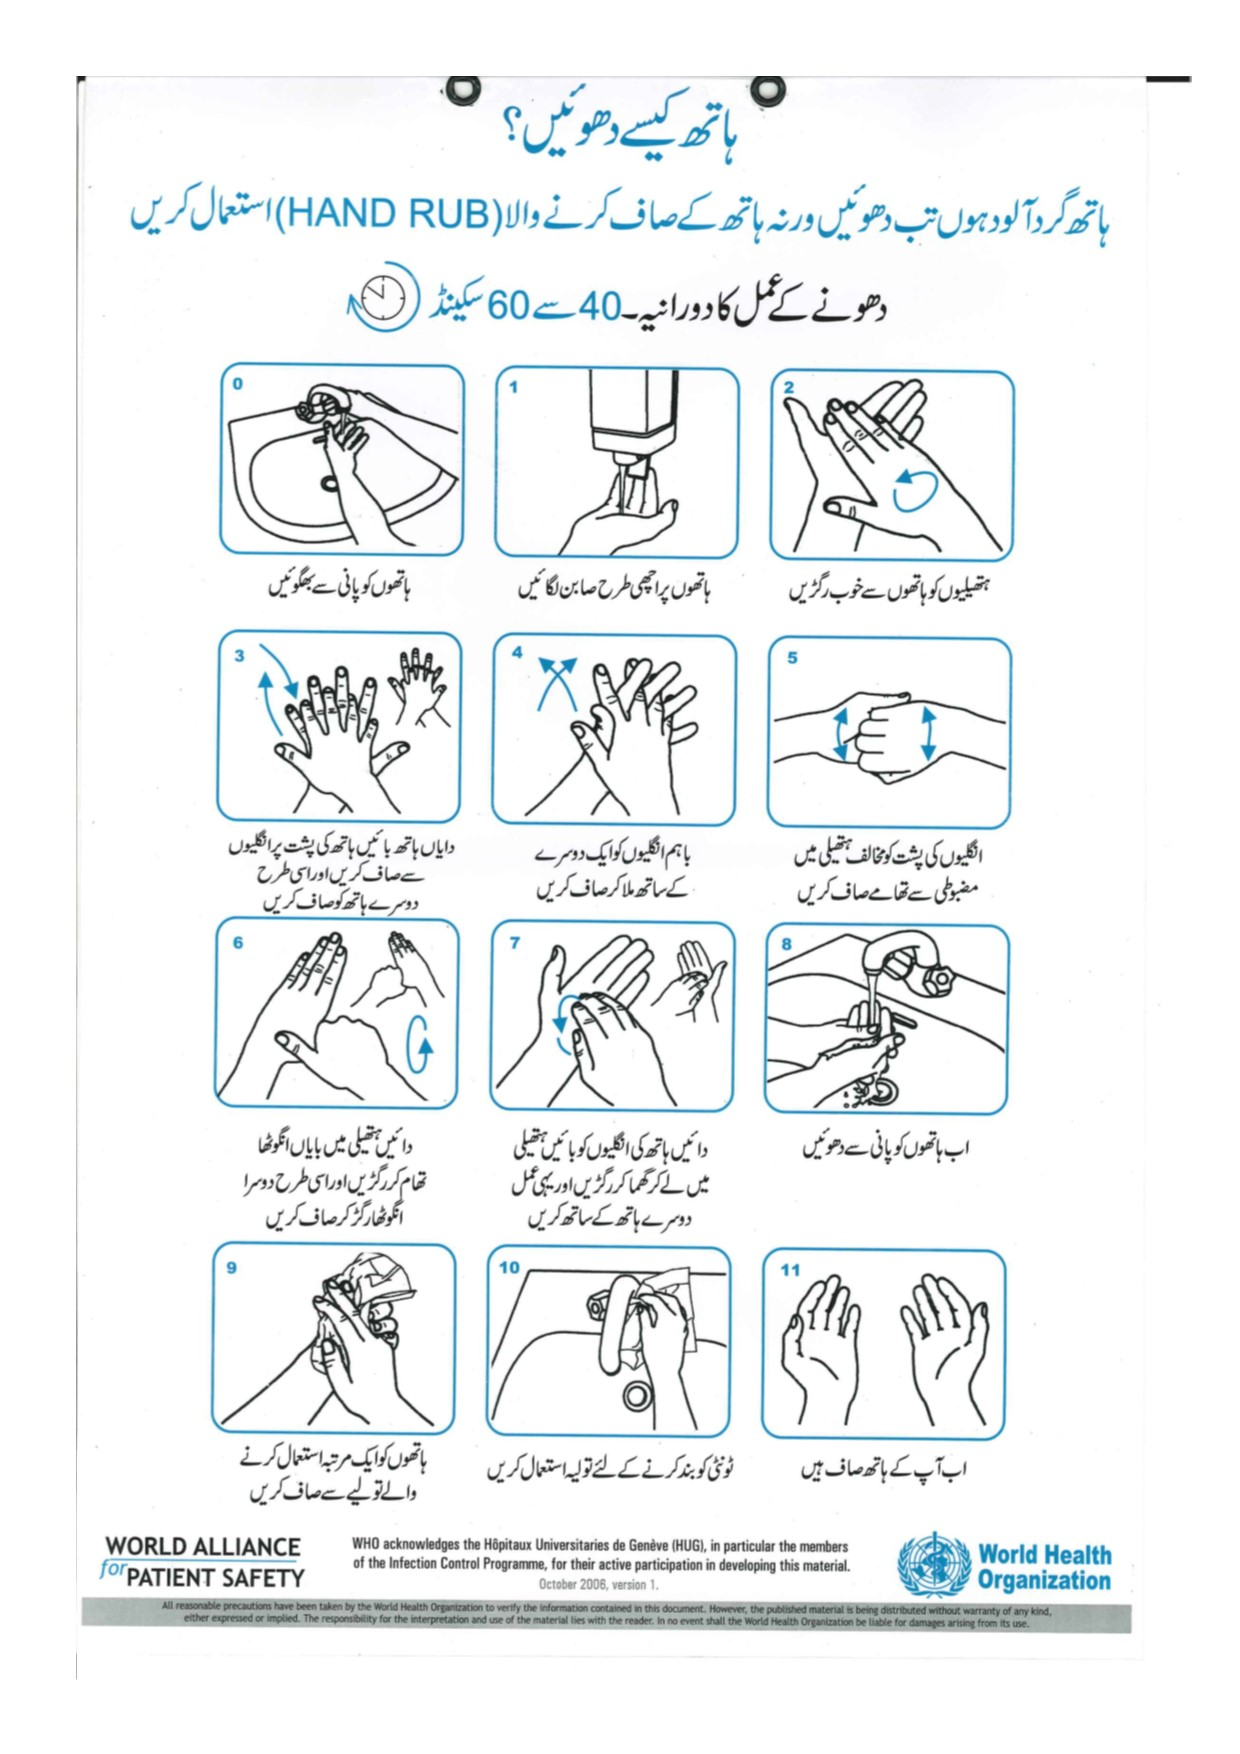 Handwashing_Urdu.jpg